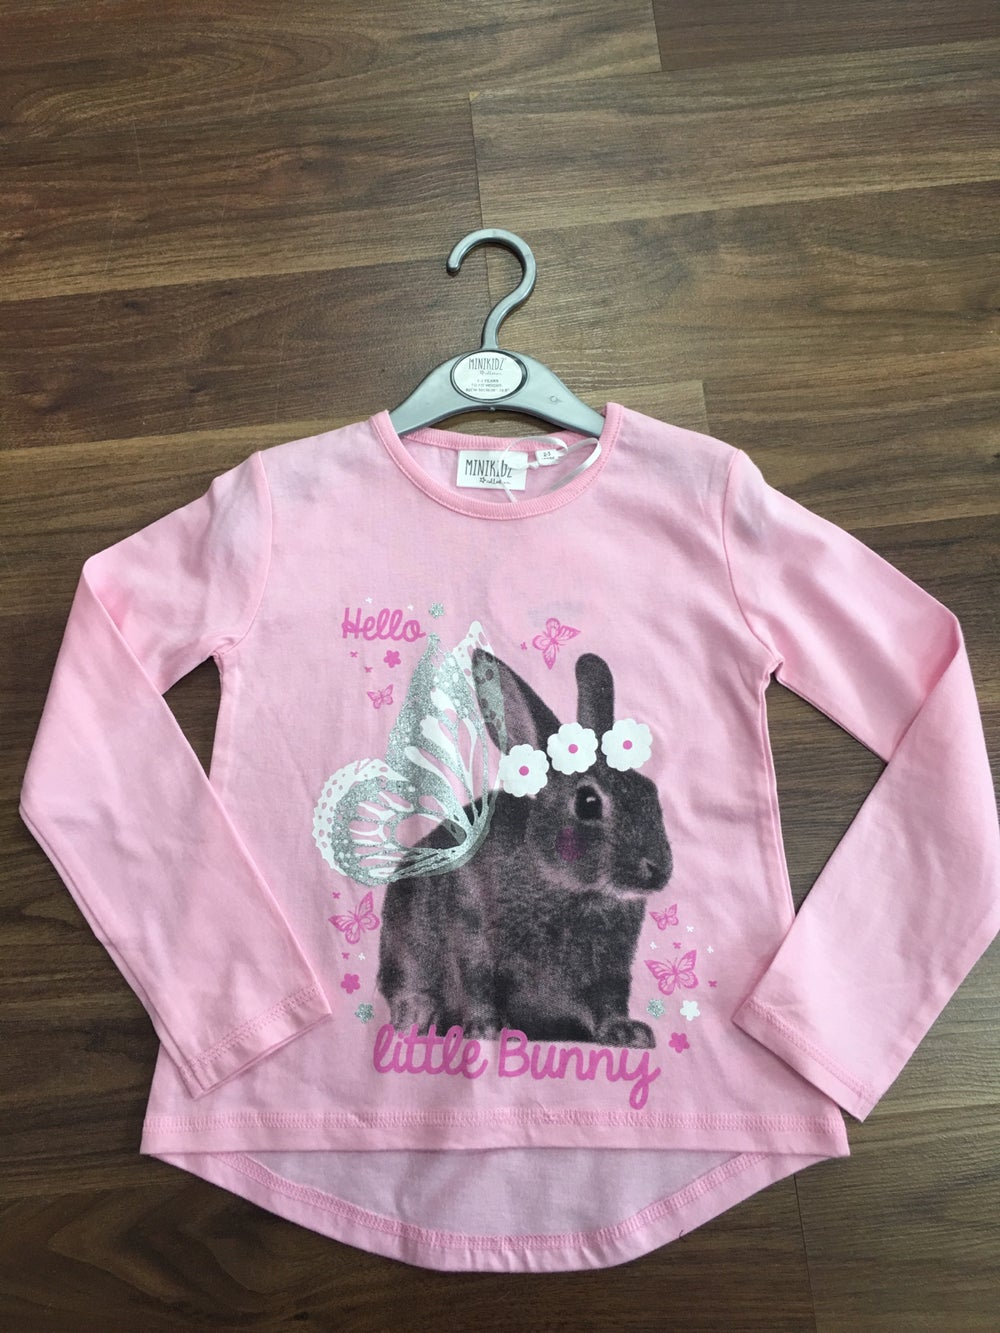 Image of Little bunny 🐰 top